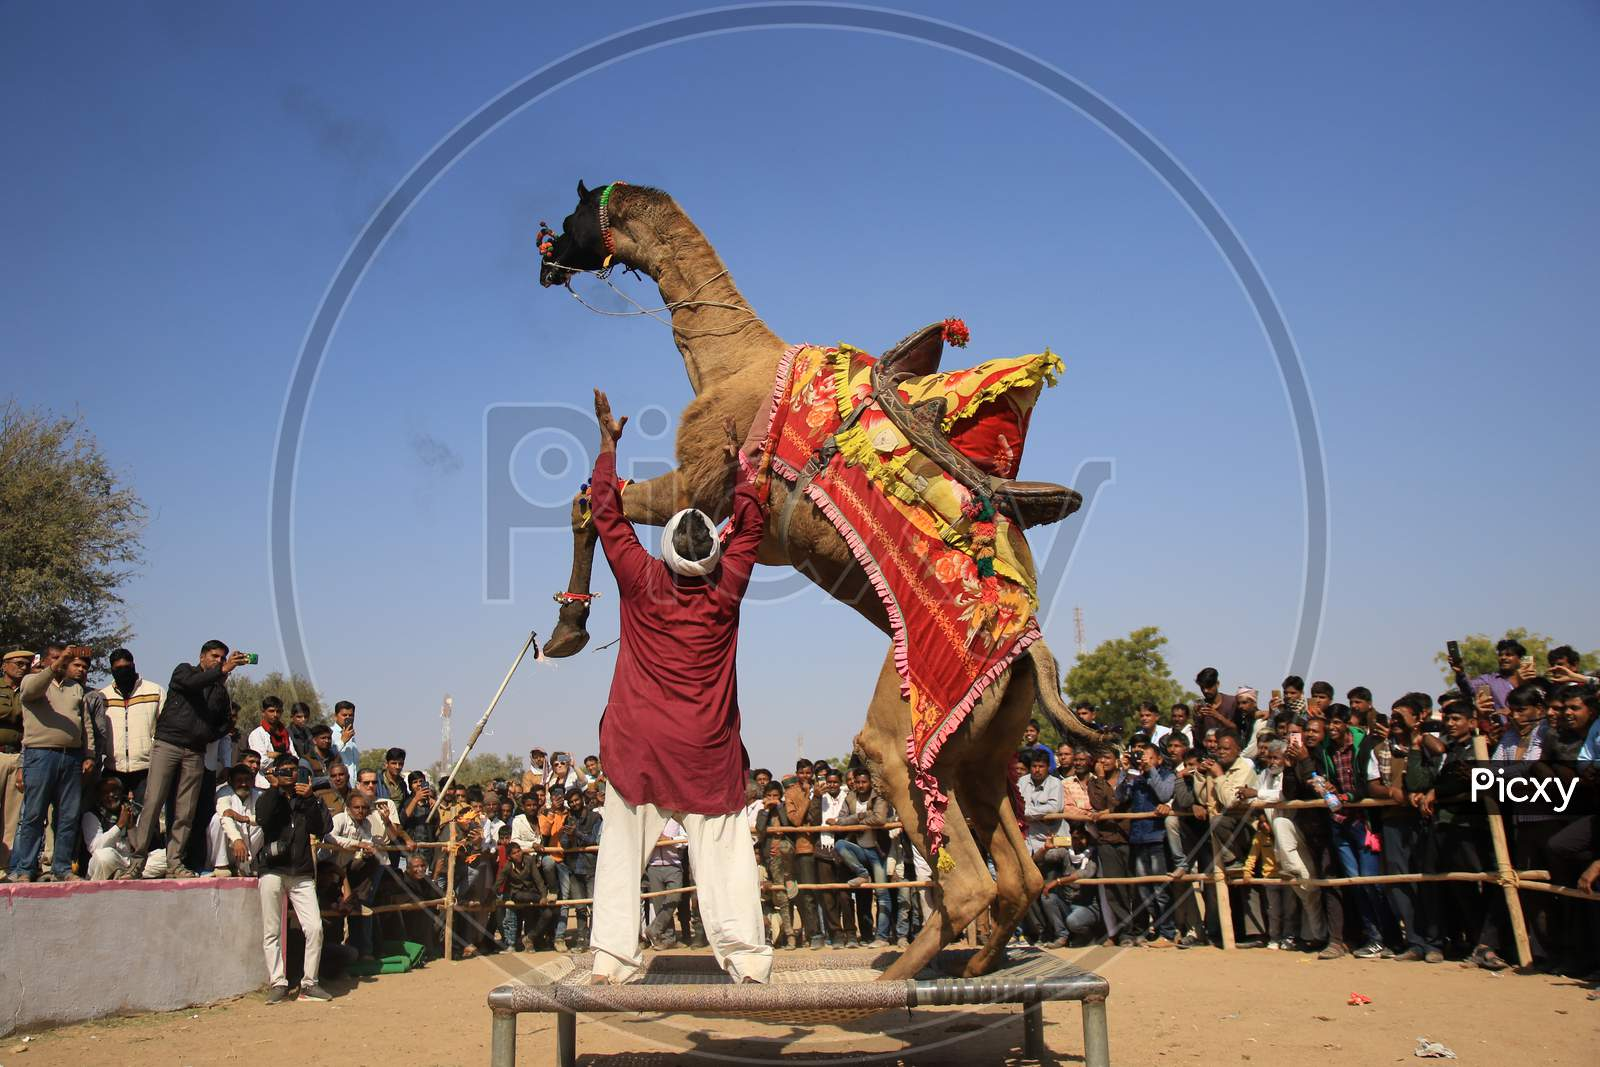 Nagaur Cattle Fair, Where Animals Like Camels, Cows, Horses And Bulls Are Brought To Be Sold Or Traded, In Nagaur District In The Desert State Of Rajasthan, India On 31 January 2020.